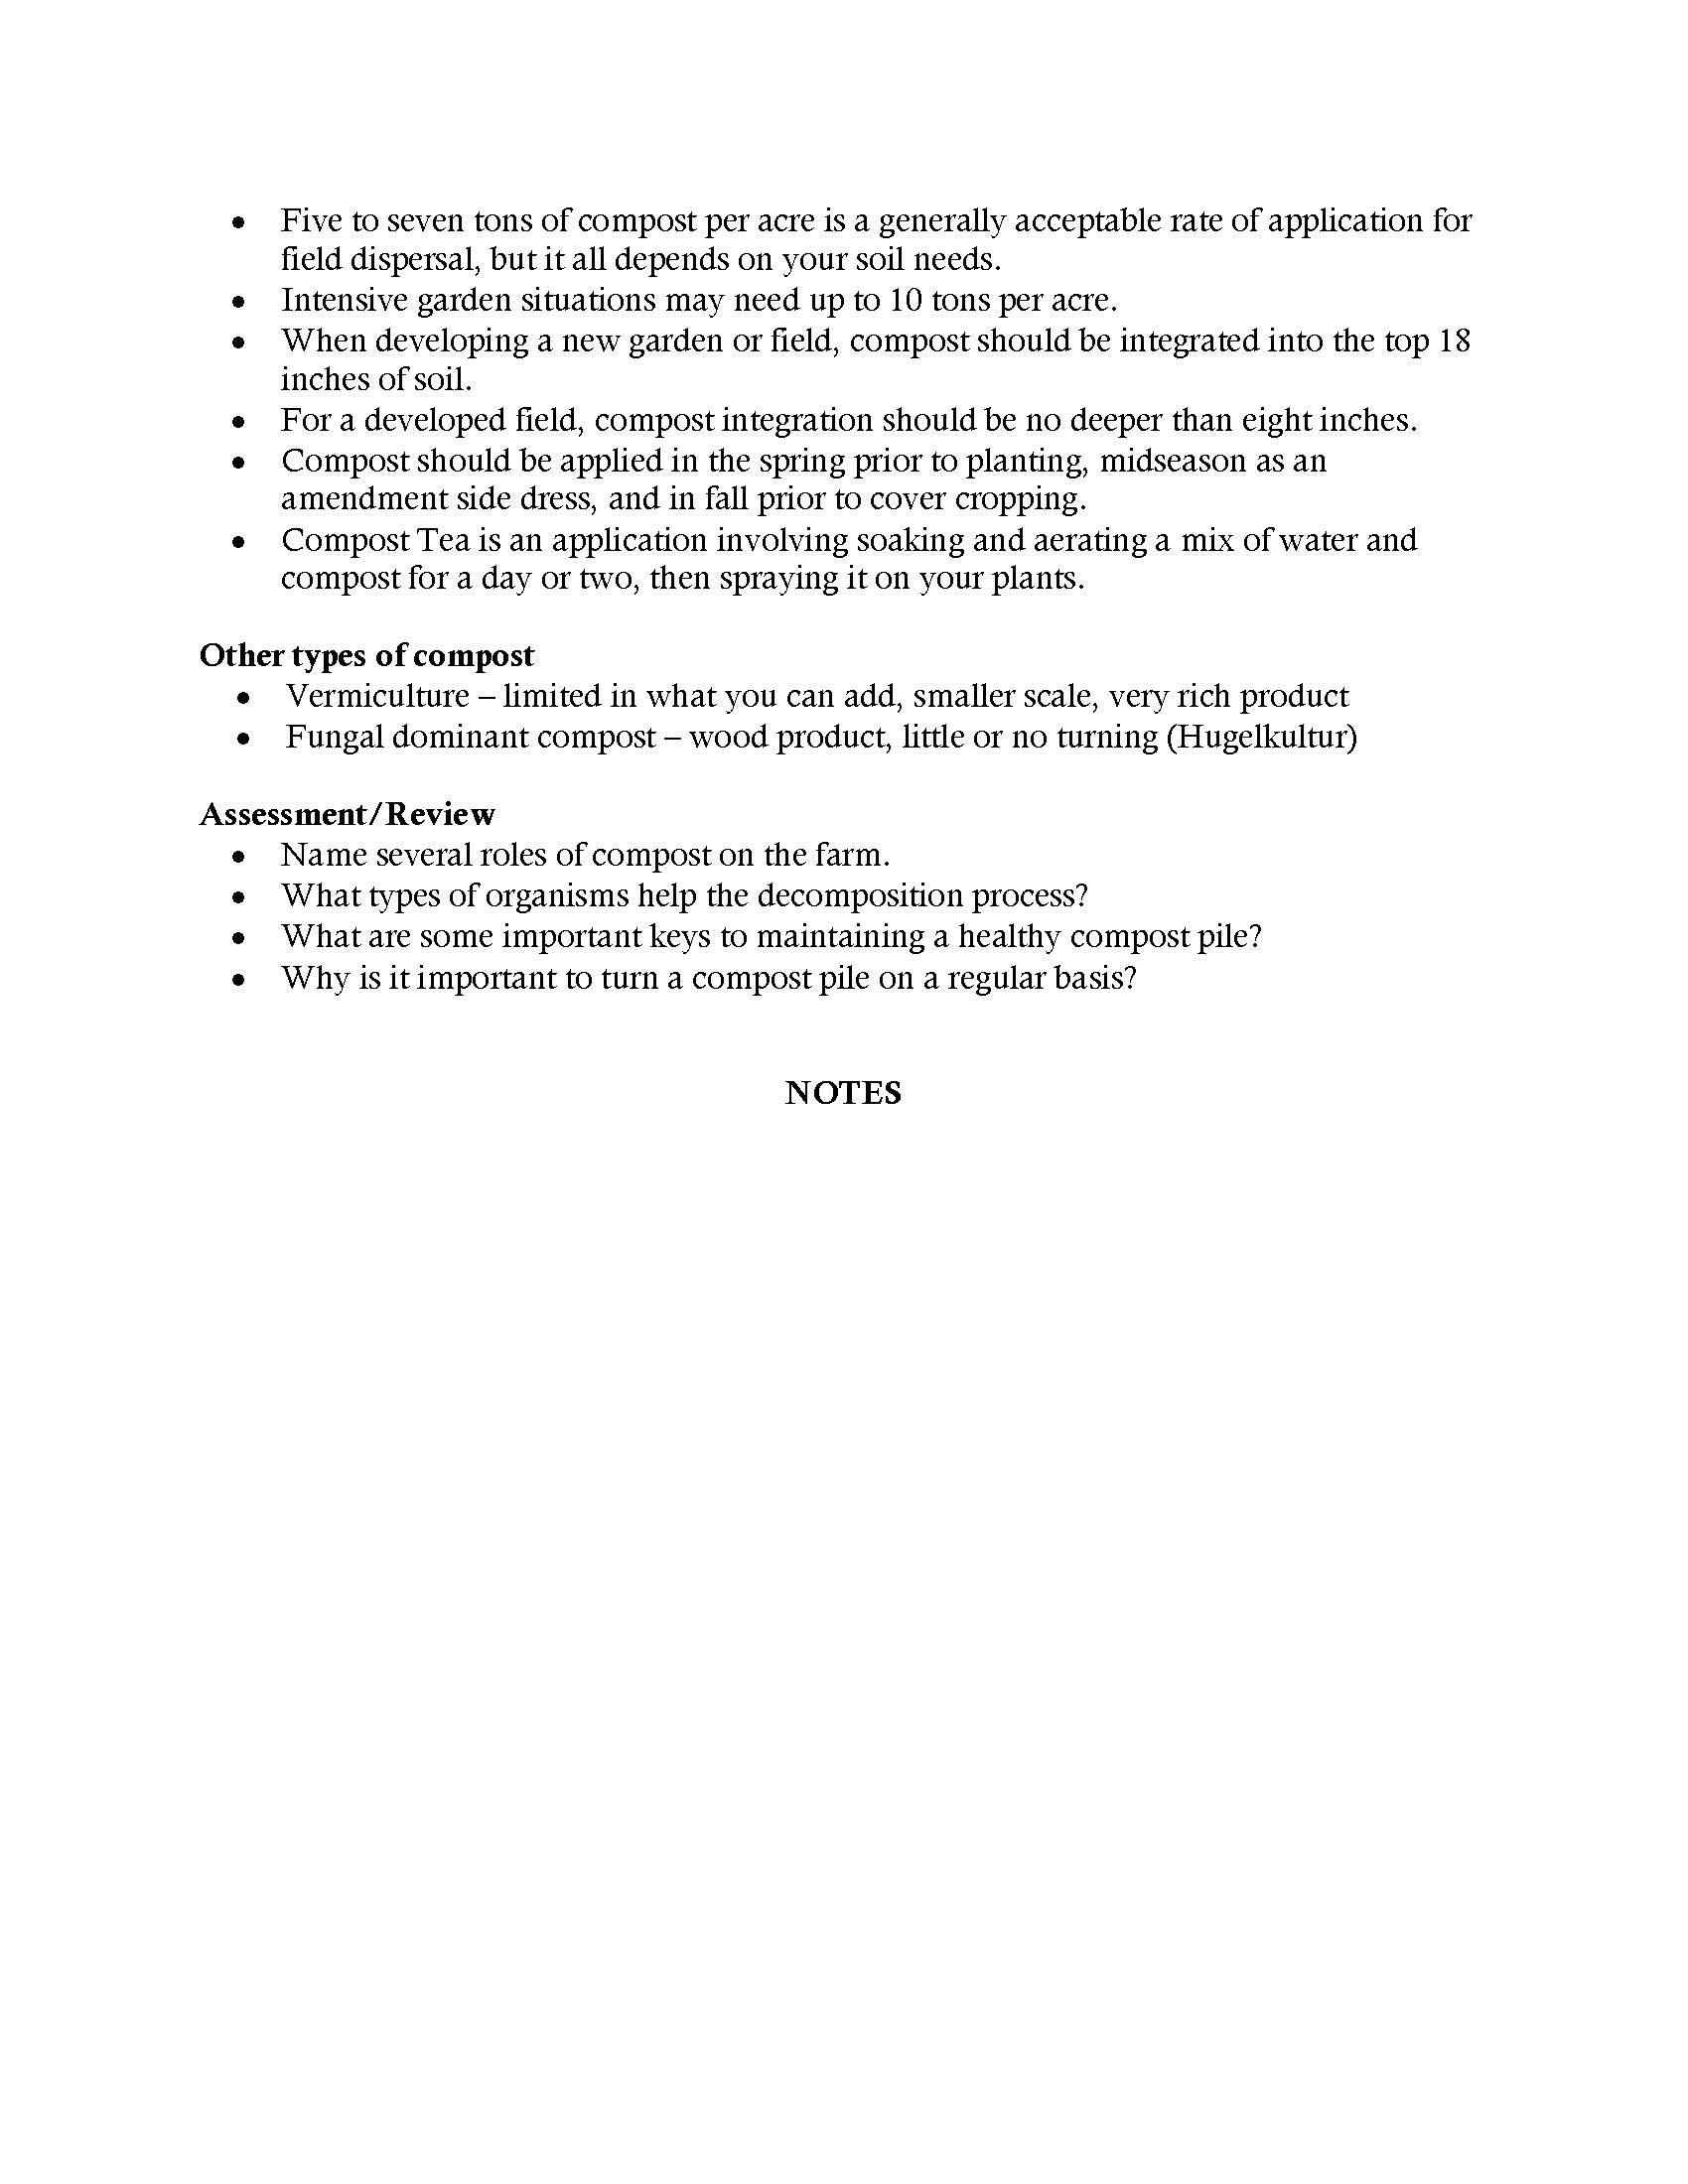 RFC Class Outlines_Page_17.jpg